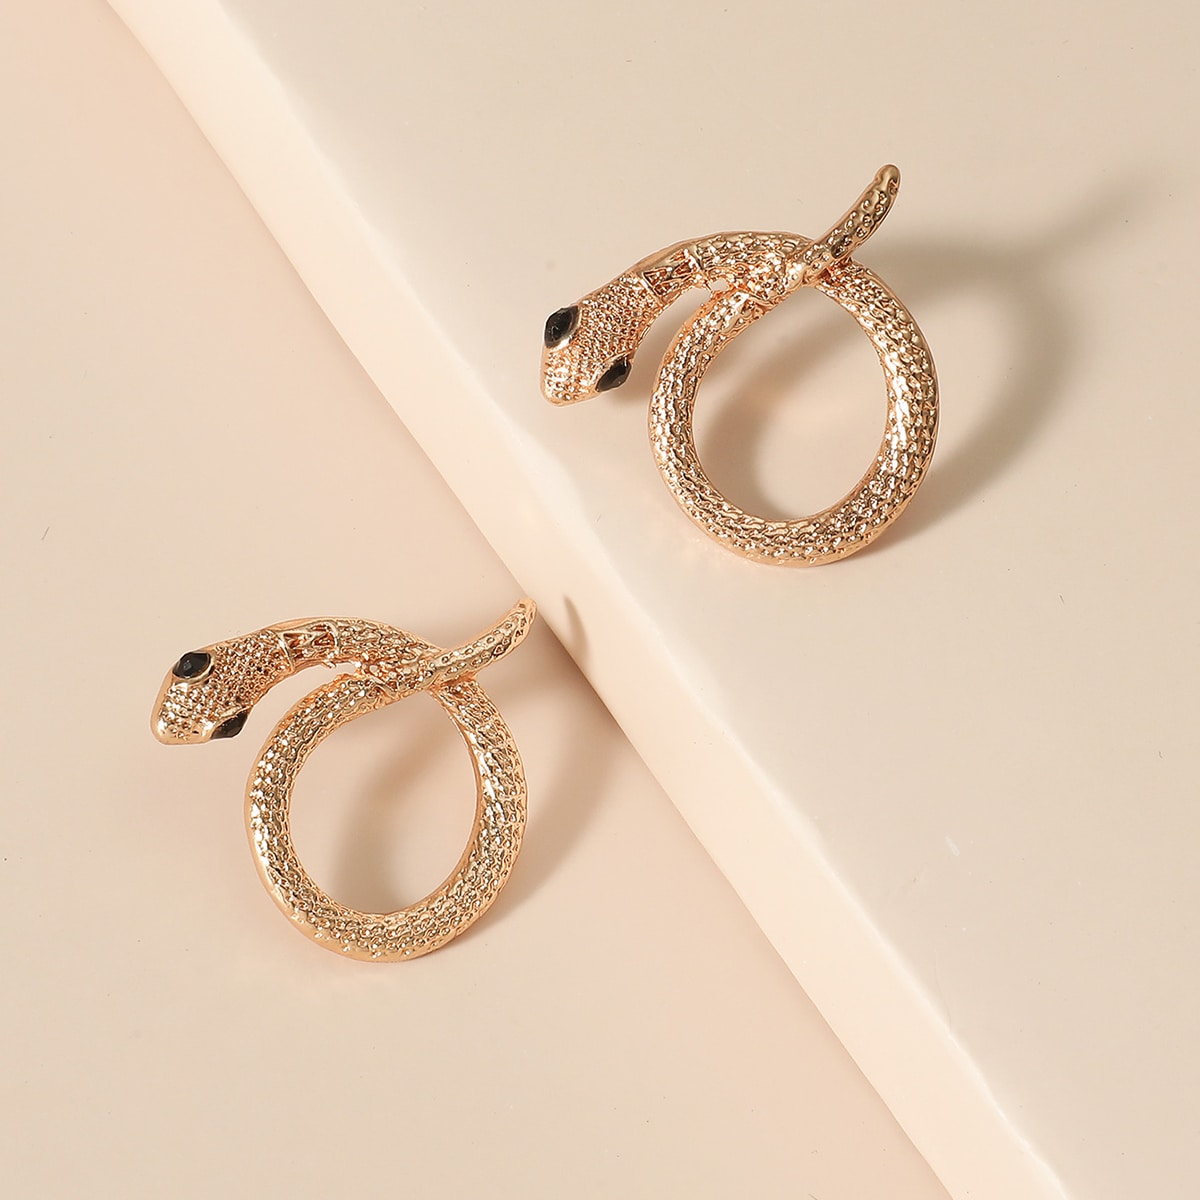 Snake Shaped Stud Earrings, SHEIN  - buy with discount